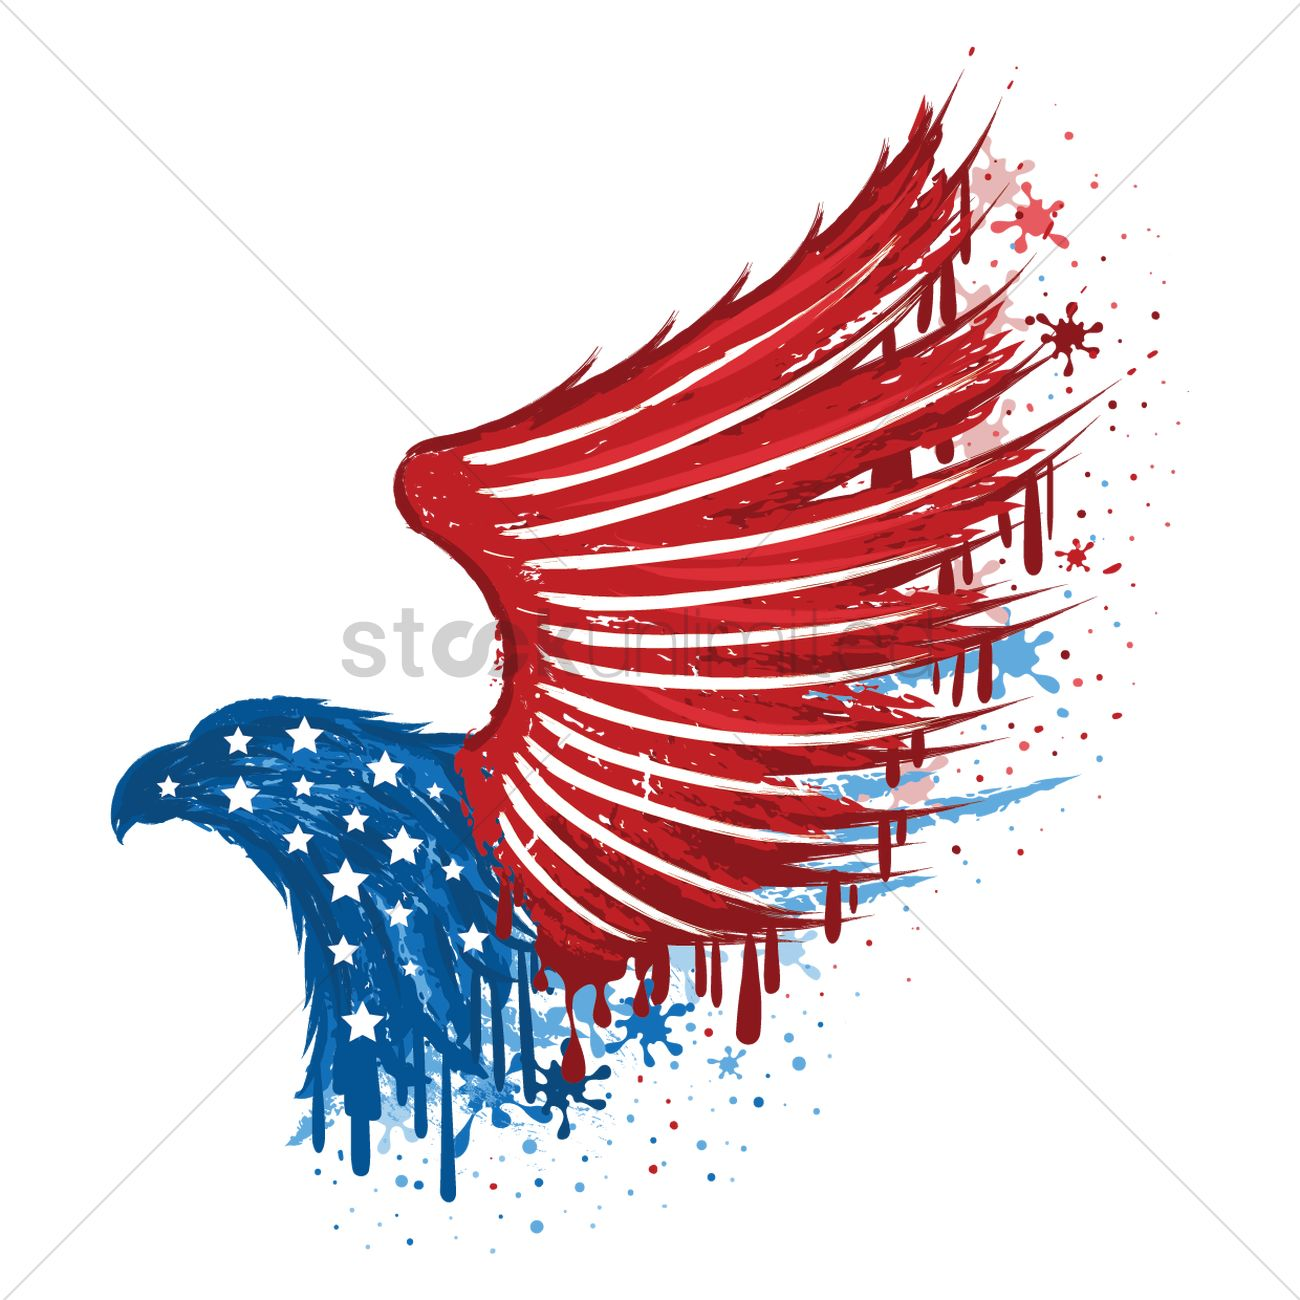 Usa eagle symbol Vector Image - 1540758 | StockUnlimited